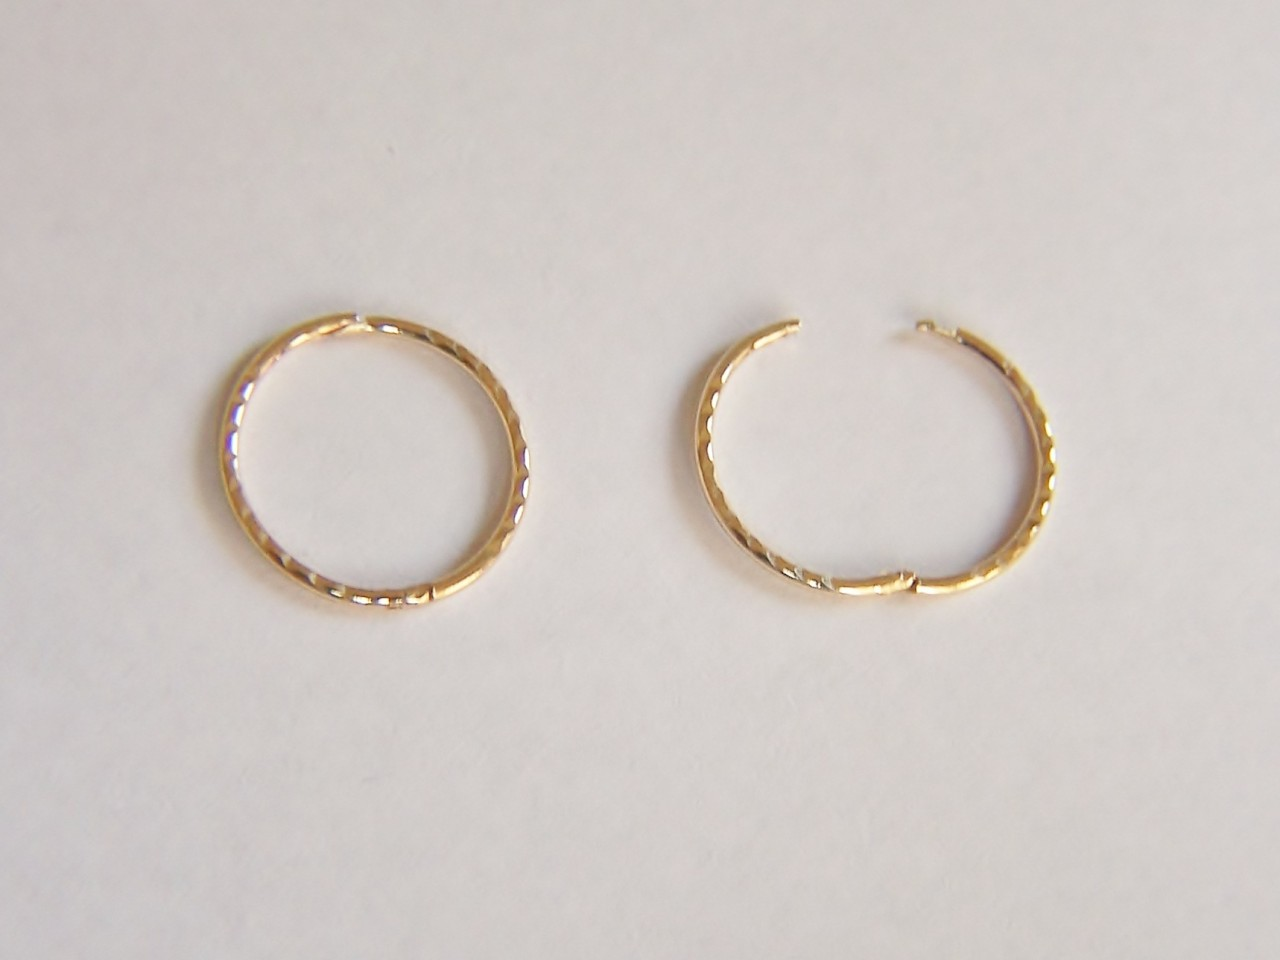 9ct Gold 15mm Diamond Cut Hinged Hoop Sleeper Earrings